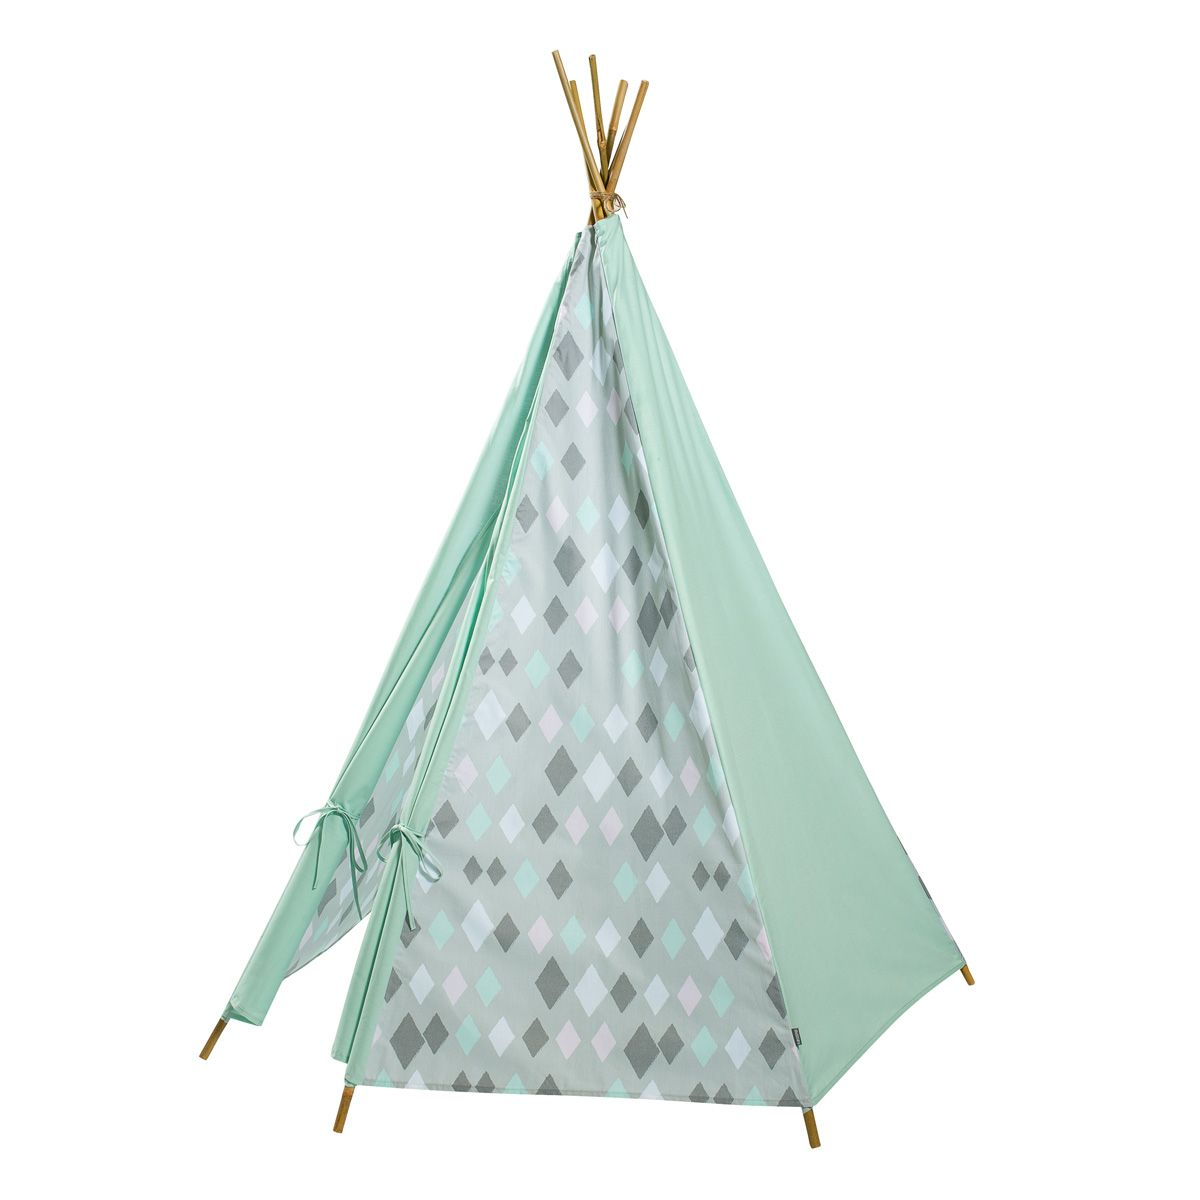 tipi zelt 39 wieber 39 rauten mint von kidsdepot kaufen bei little roomers. Black Bedroom Furniture Sets. Home Design Ideas